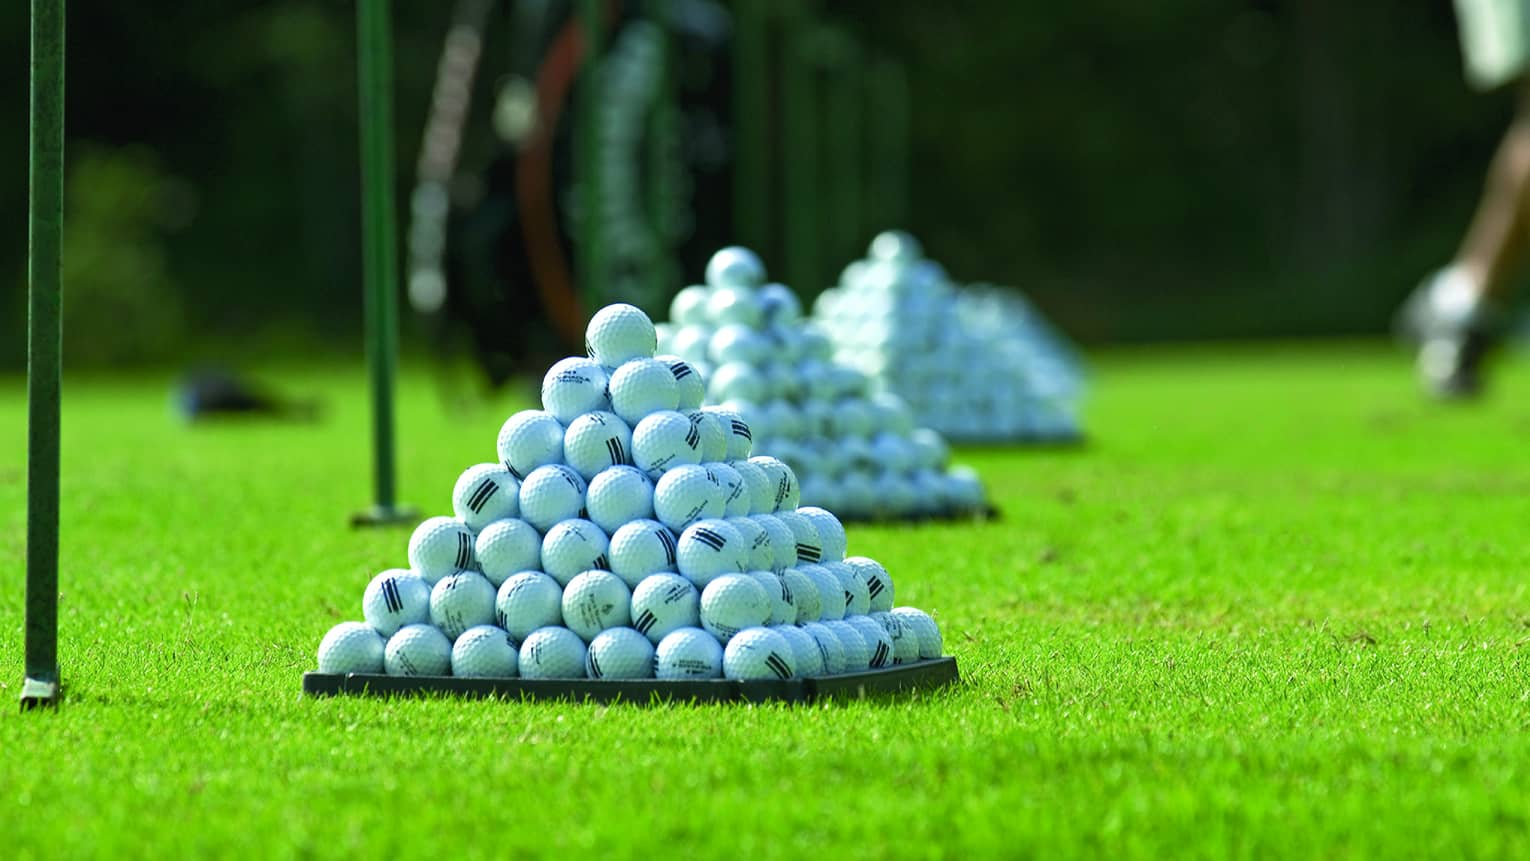 Golf balls arranged in pyramid formations in row on golf course green